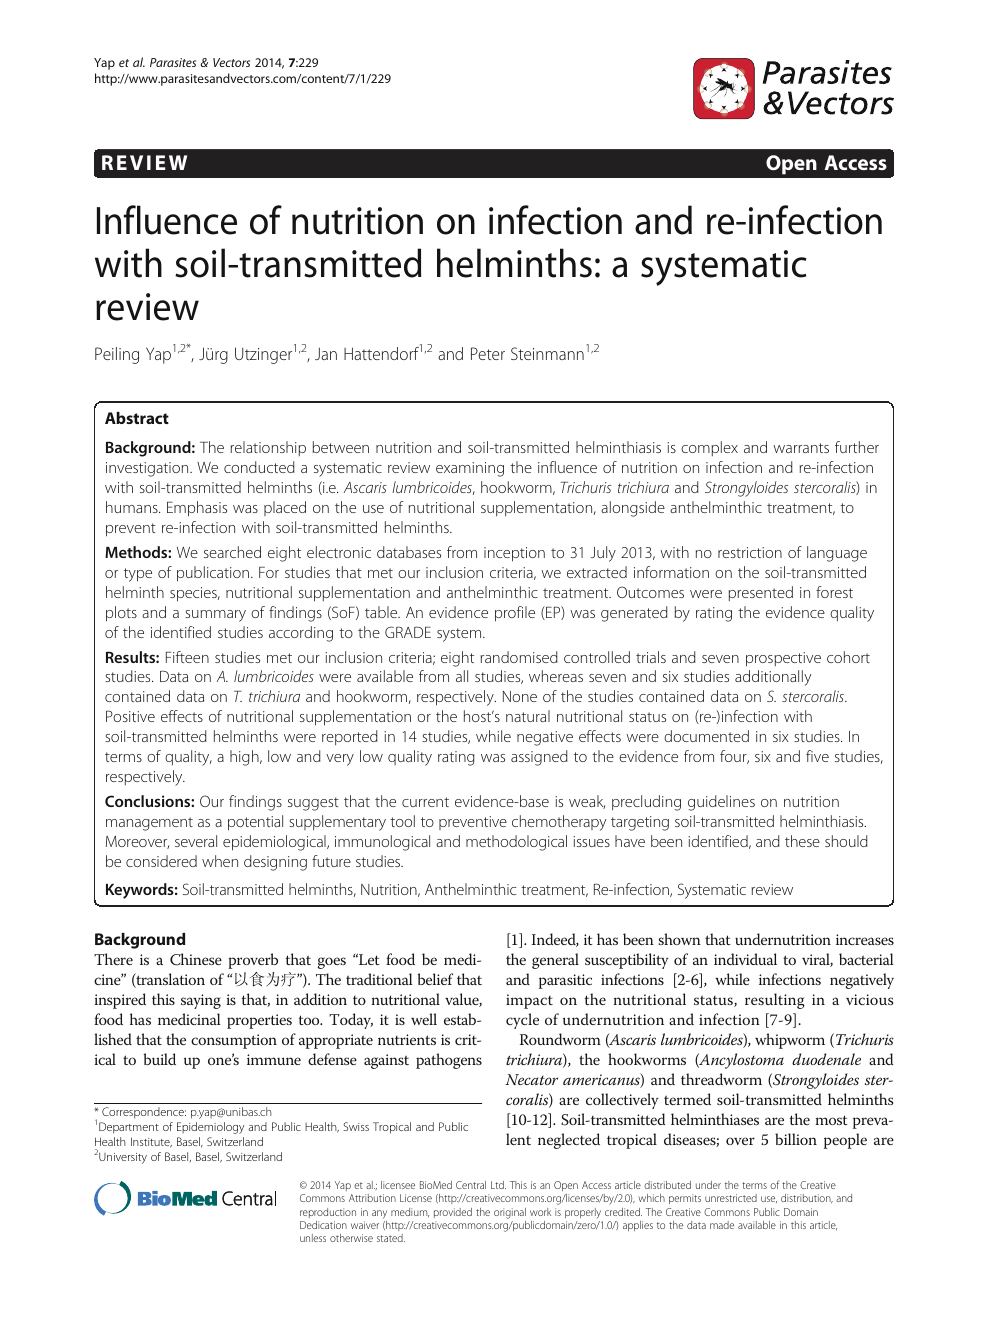 helminth infection systematic review human papillomavirus induced warts